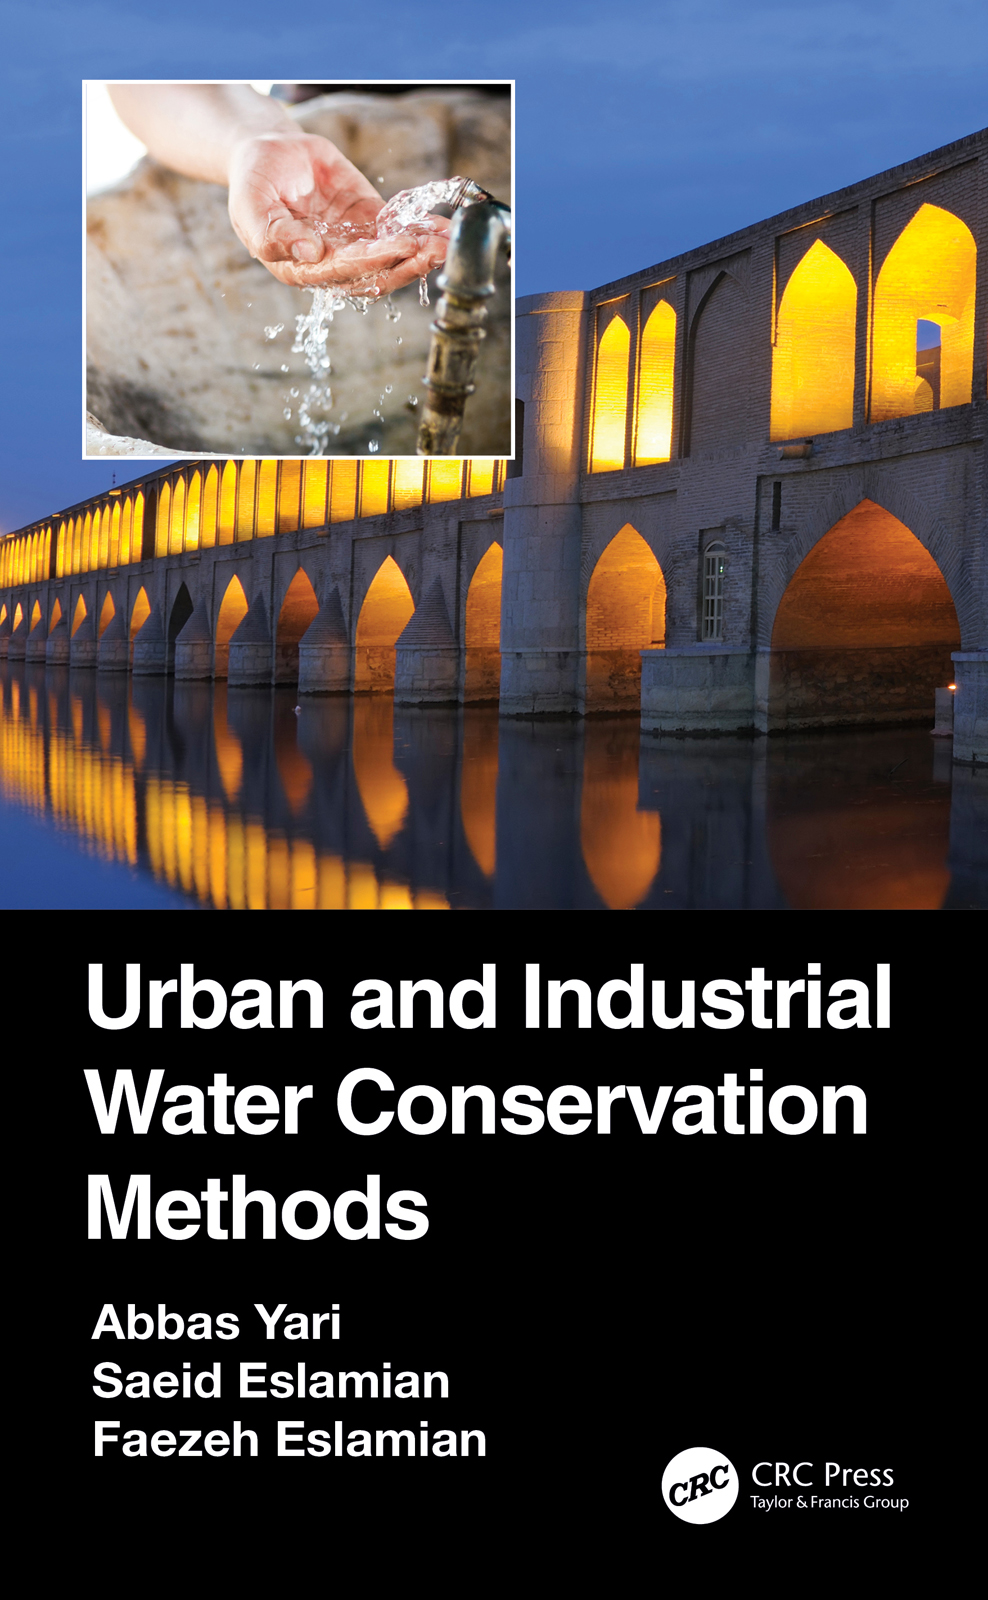 Urban and Industrial Water Conservation Methods